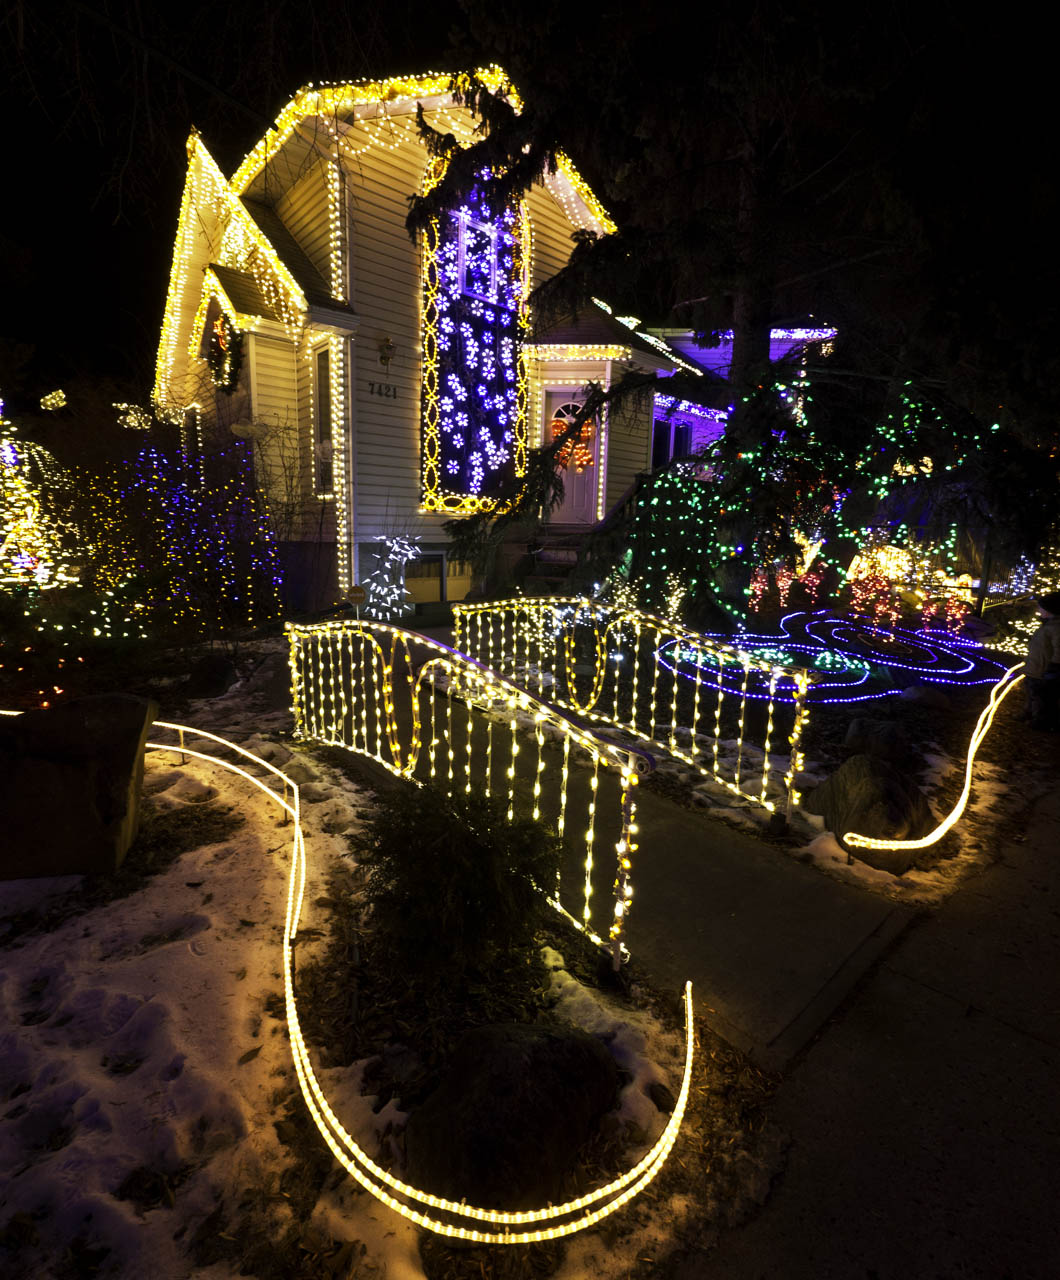 Edmonton Christmas Lights: 7421-108 Street Christmas Lights